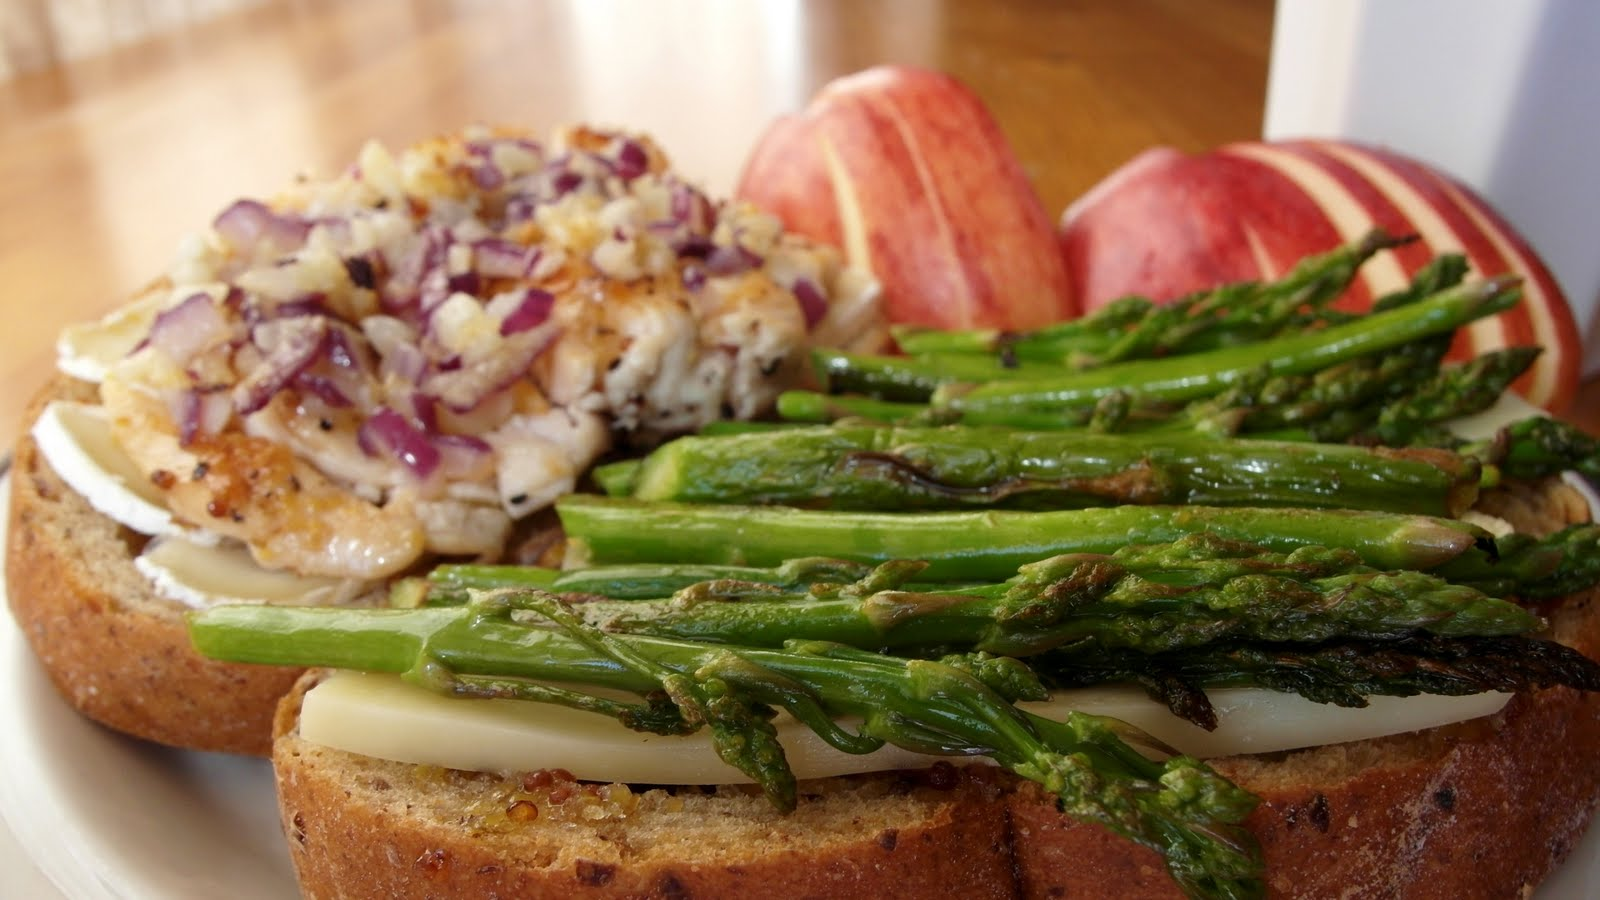 Glorious Sandwiches: asparagus and turkey breast grilled cheese